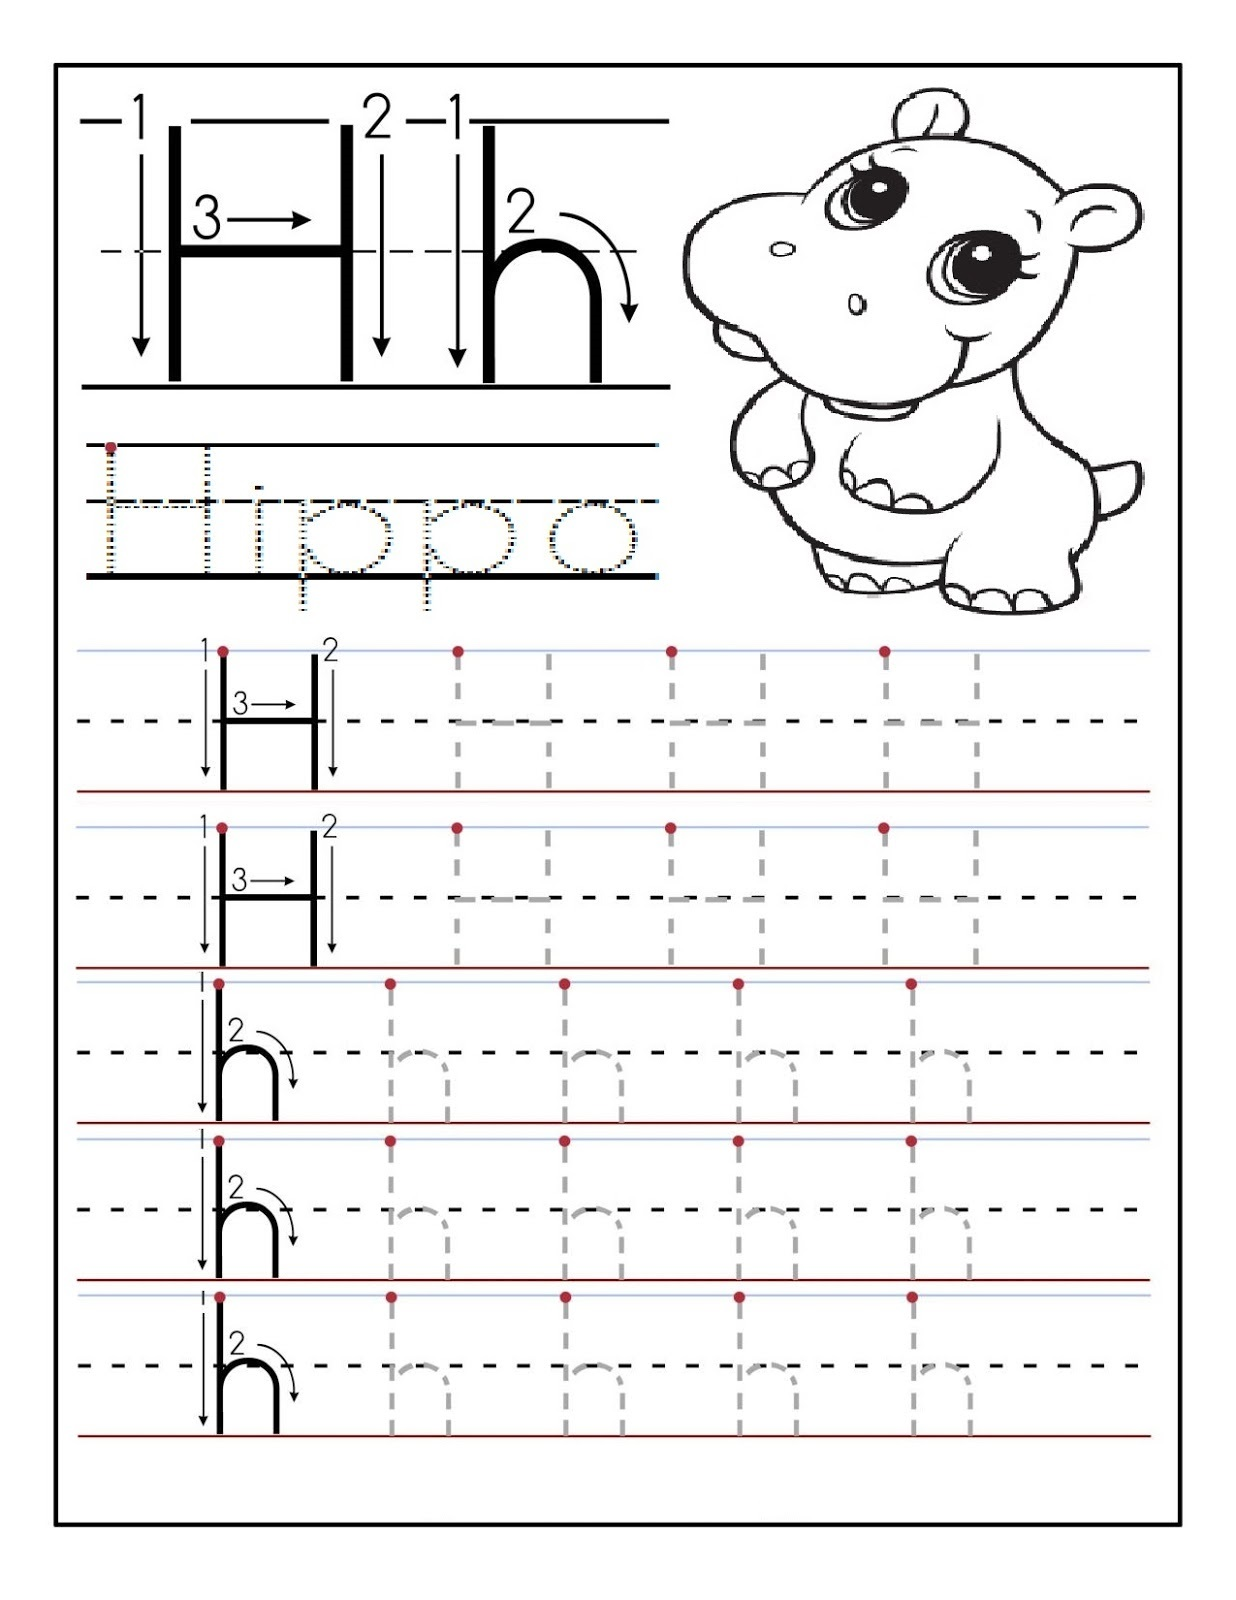 Free Worksheet Letter H Worksheets letter h worksheets for preschool crafts printable tracing preschoolers